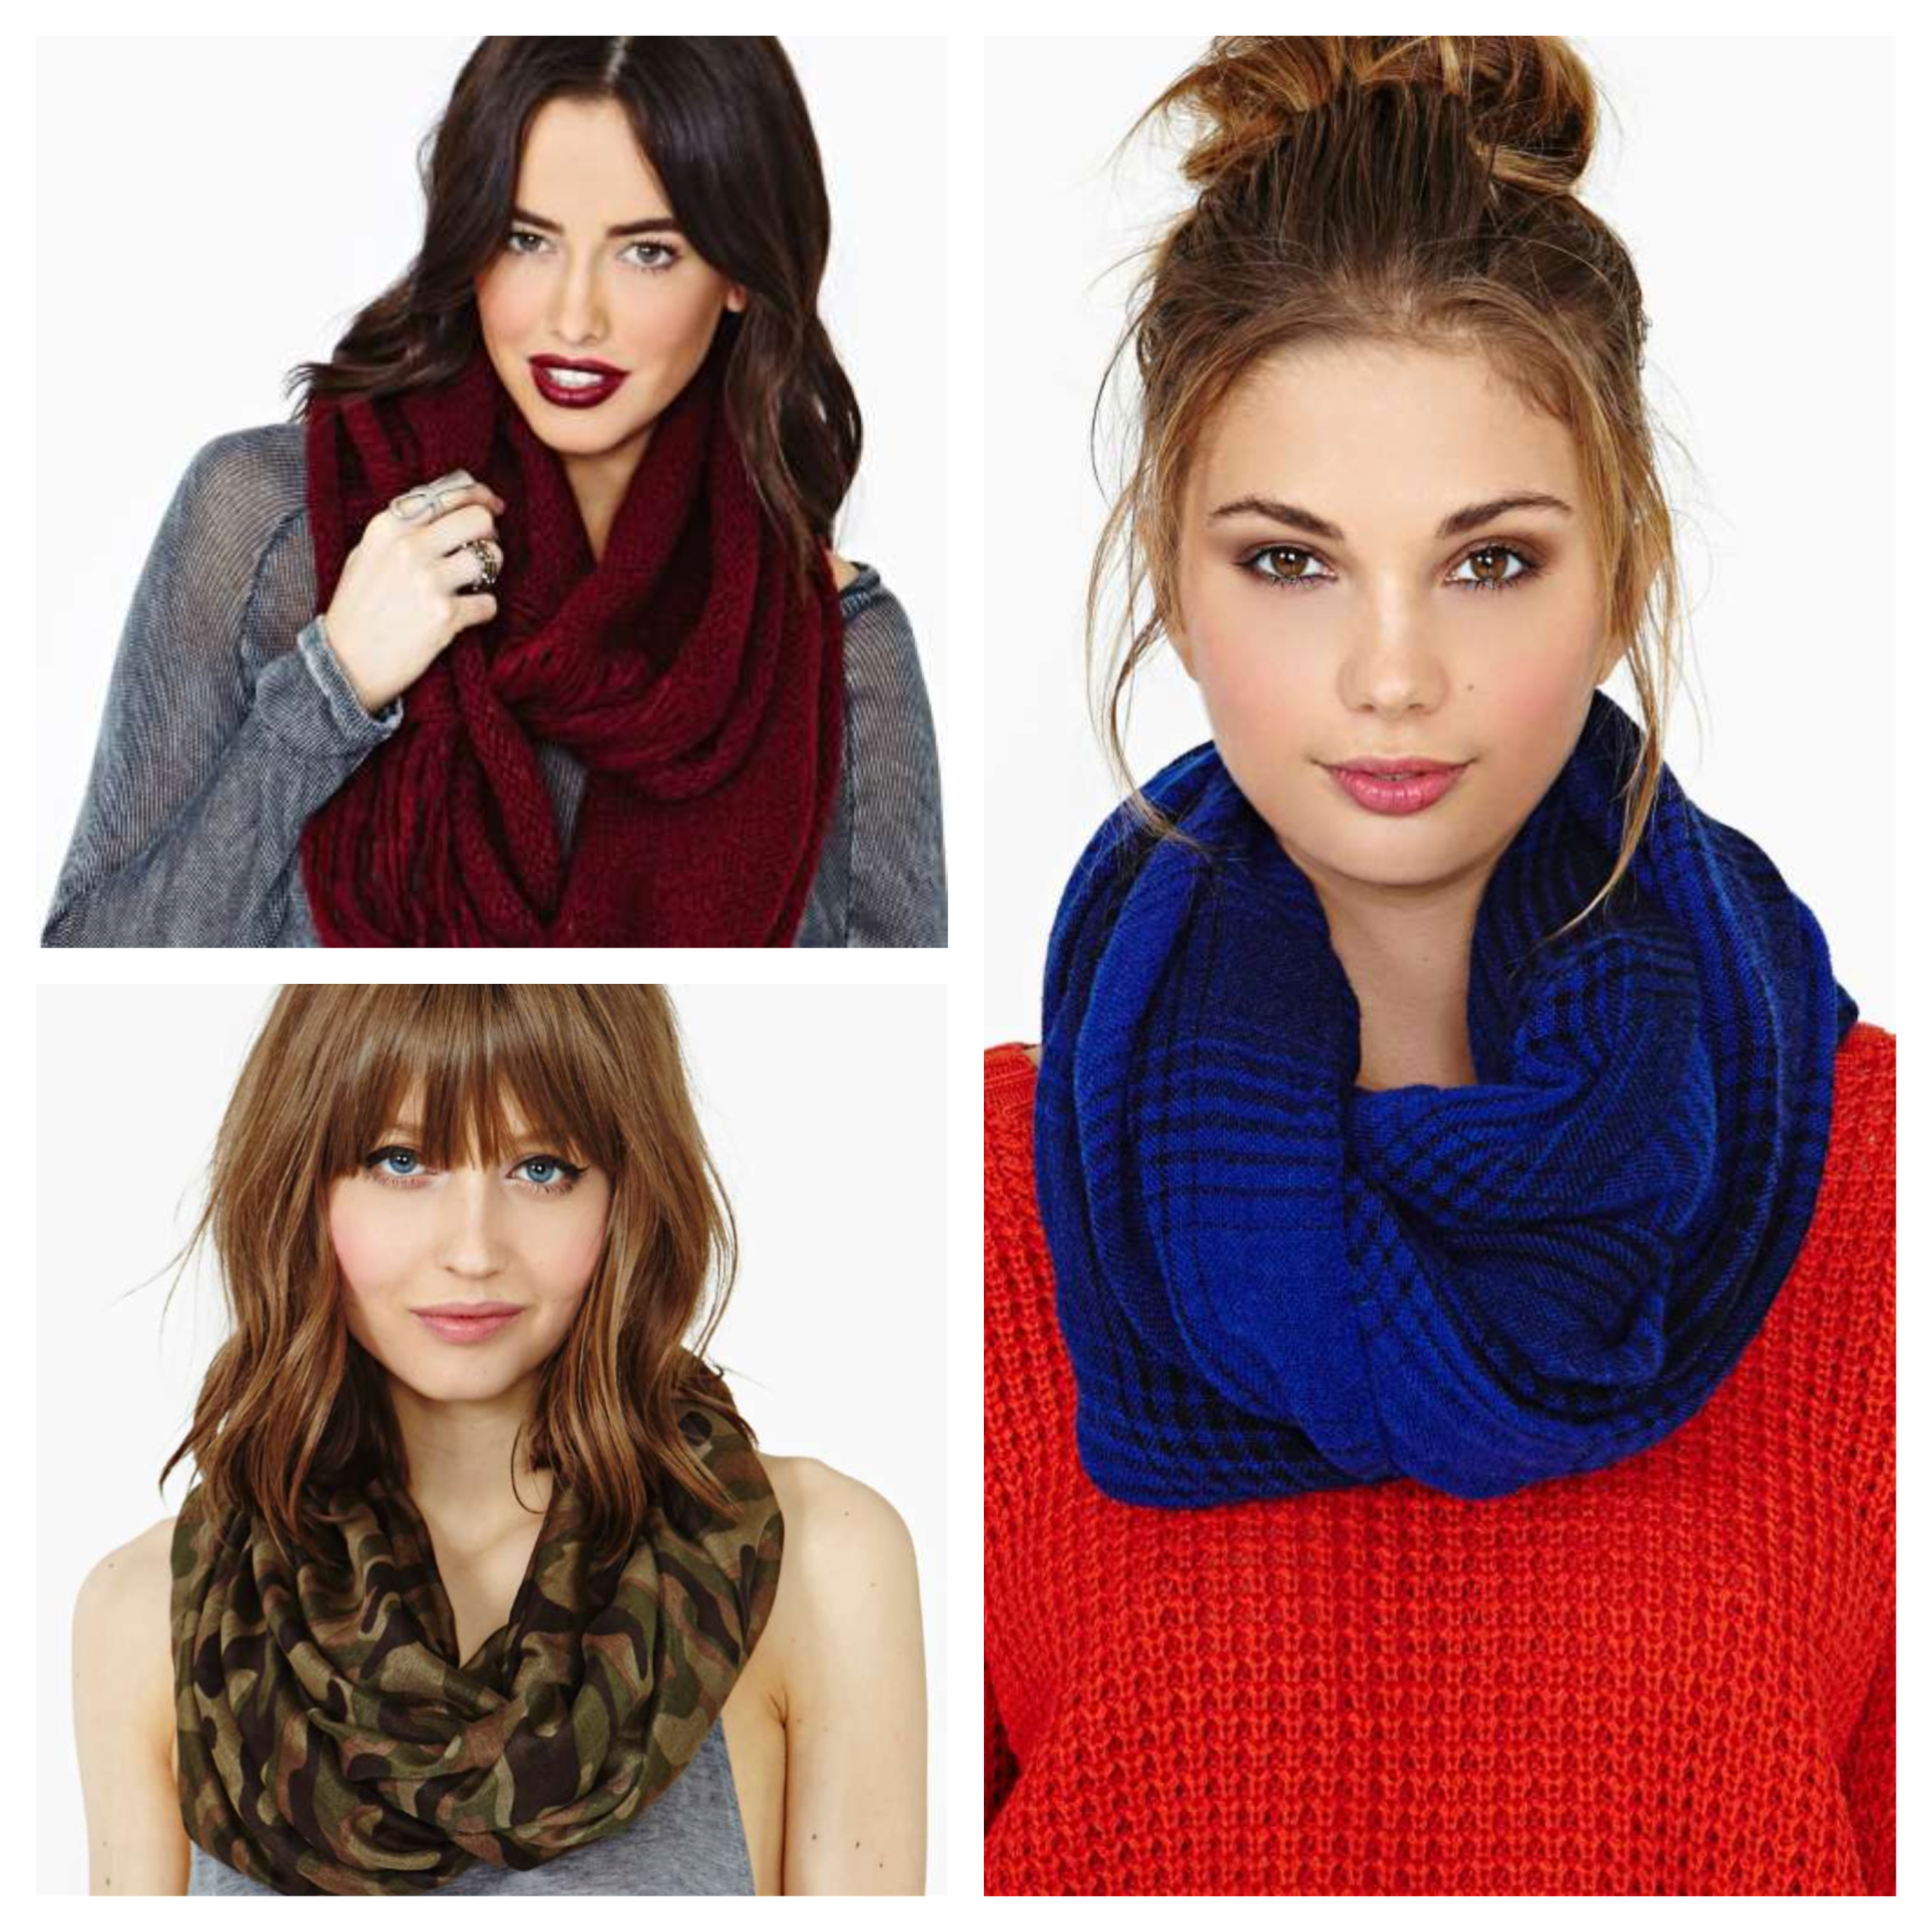 Infinity scarves from Nasty Gal.